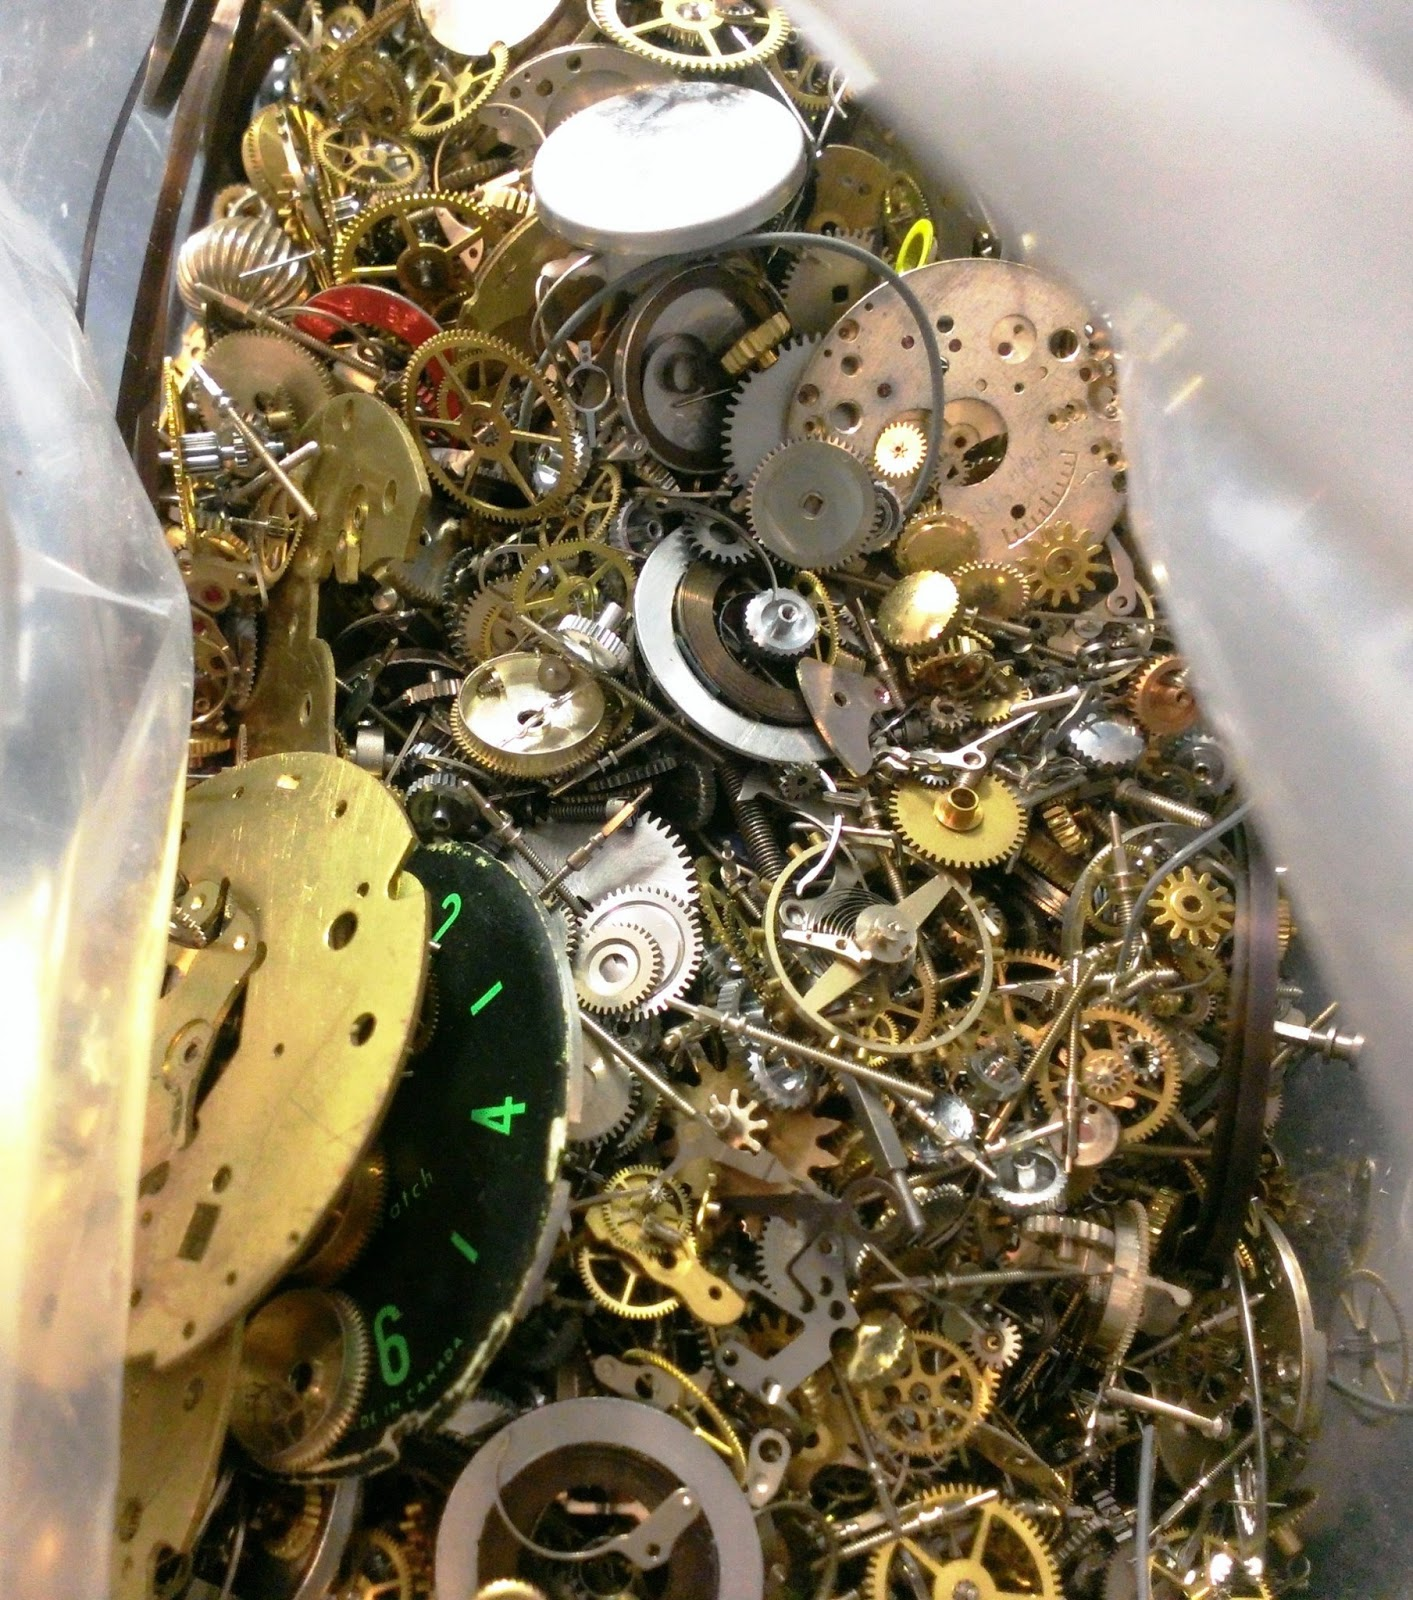 Watch wrist parts - The Bag Weighted 3 Kilograms And Was The Densest Most Assorted Jumble Of Watch Parts I Ve Ever Seen Every Conceivable Part For Wrist And Pocket Watches